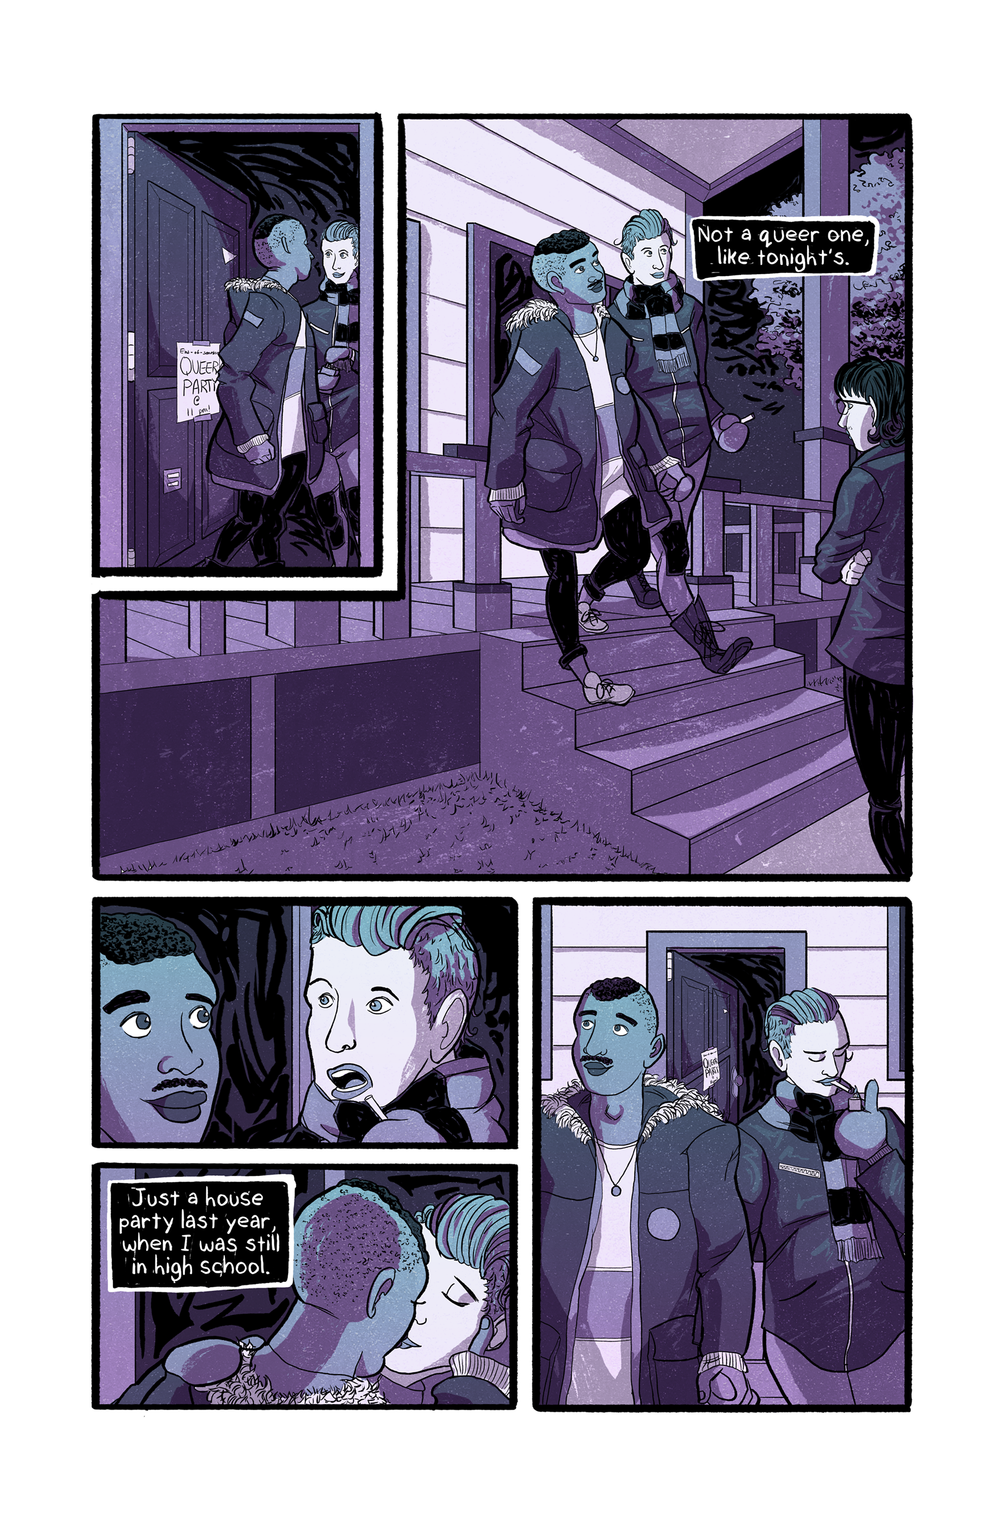 02untitled sad gay boy comic - page 02.png